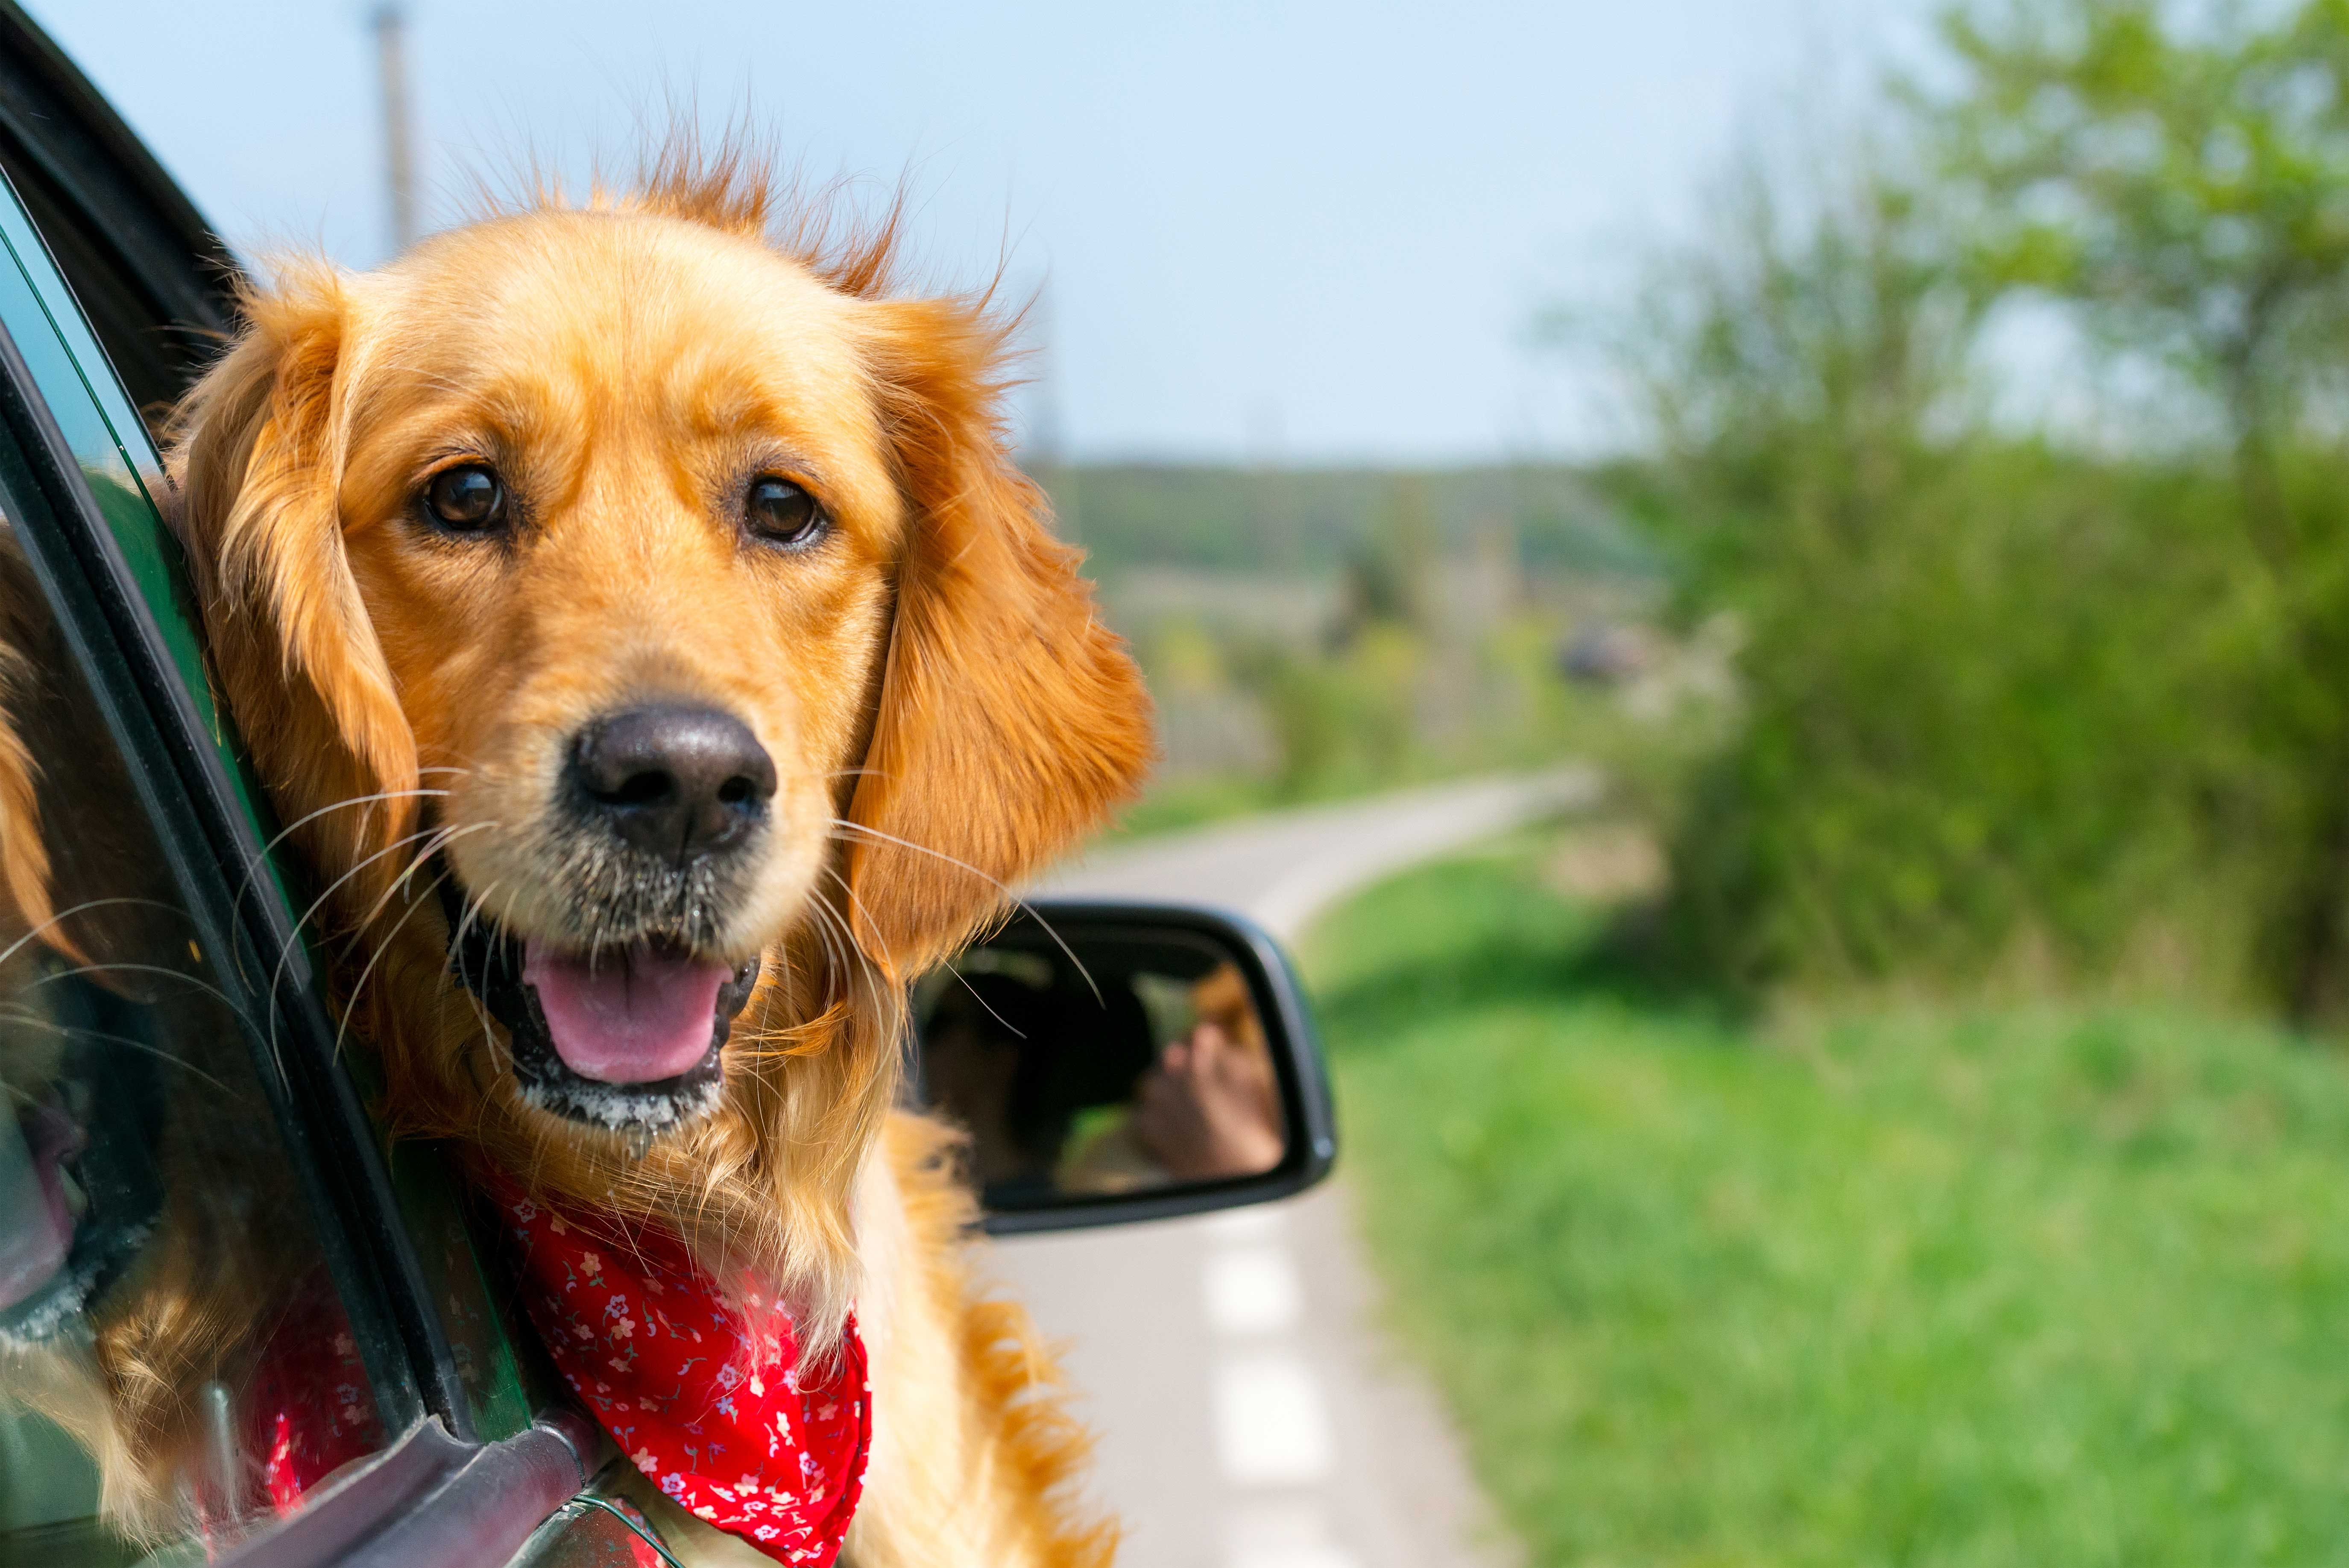 For Your Convenience Morris Animal Inn Offers A Pet Chauffeur Service Round Trip To Morris Animal Inn Dog Daycare Pet Boarding Natural Dog Care